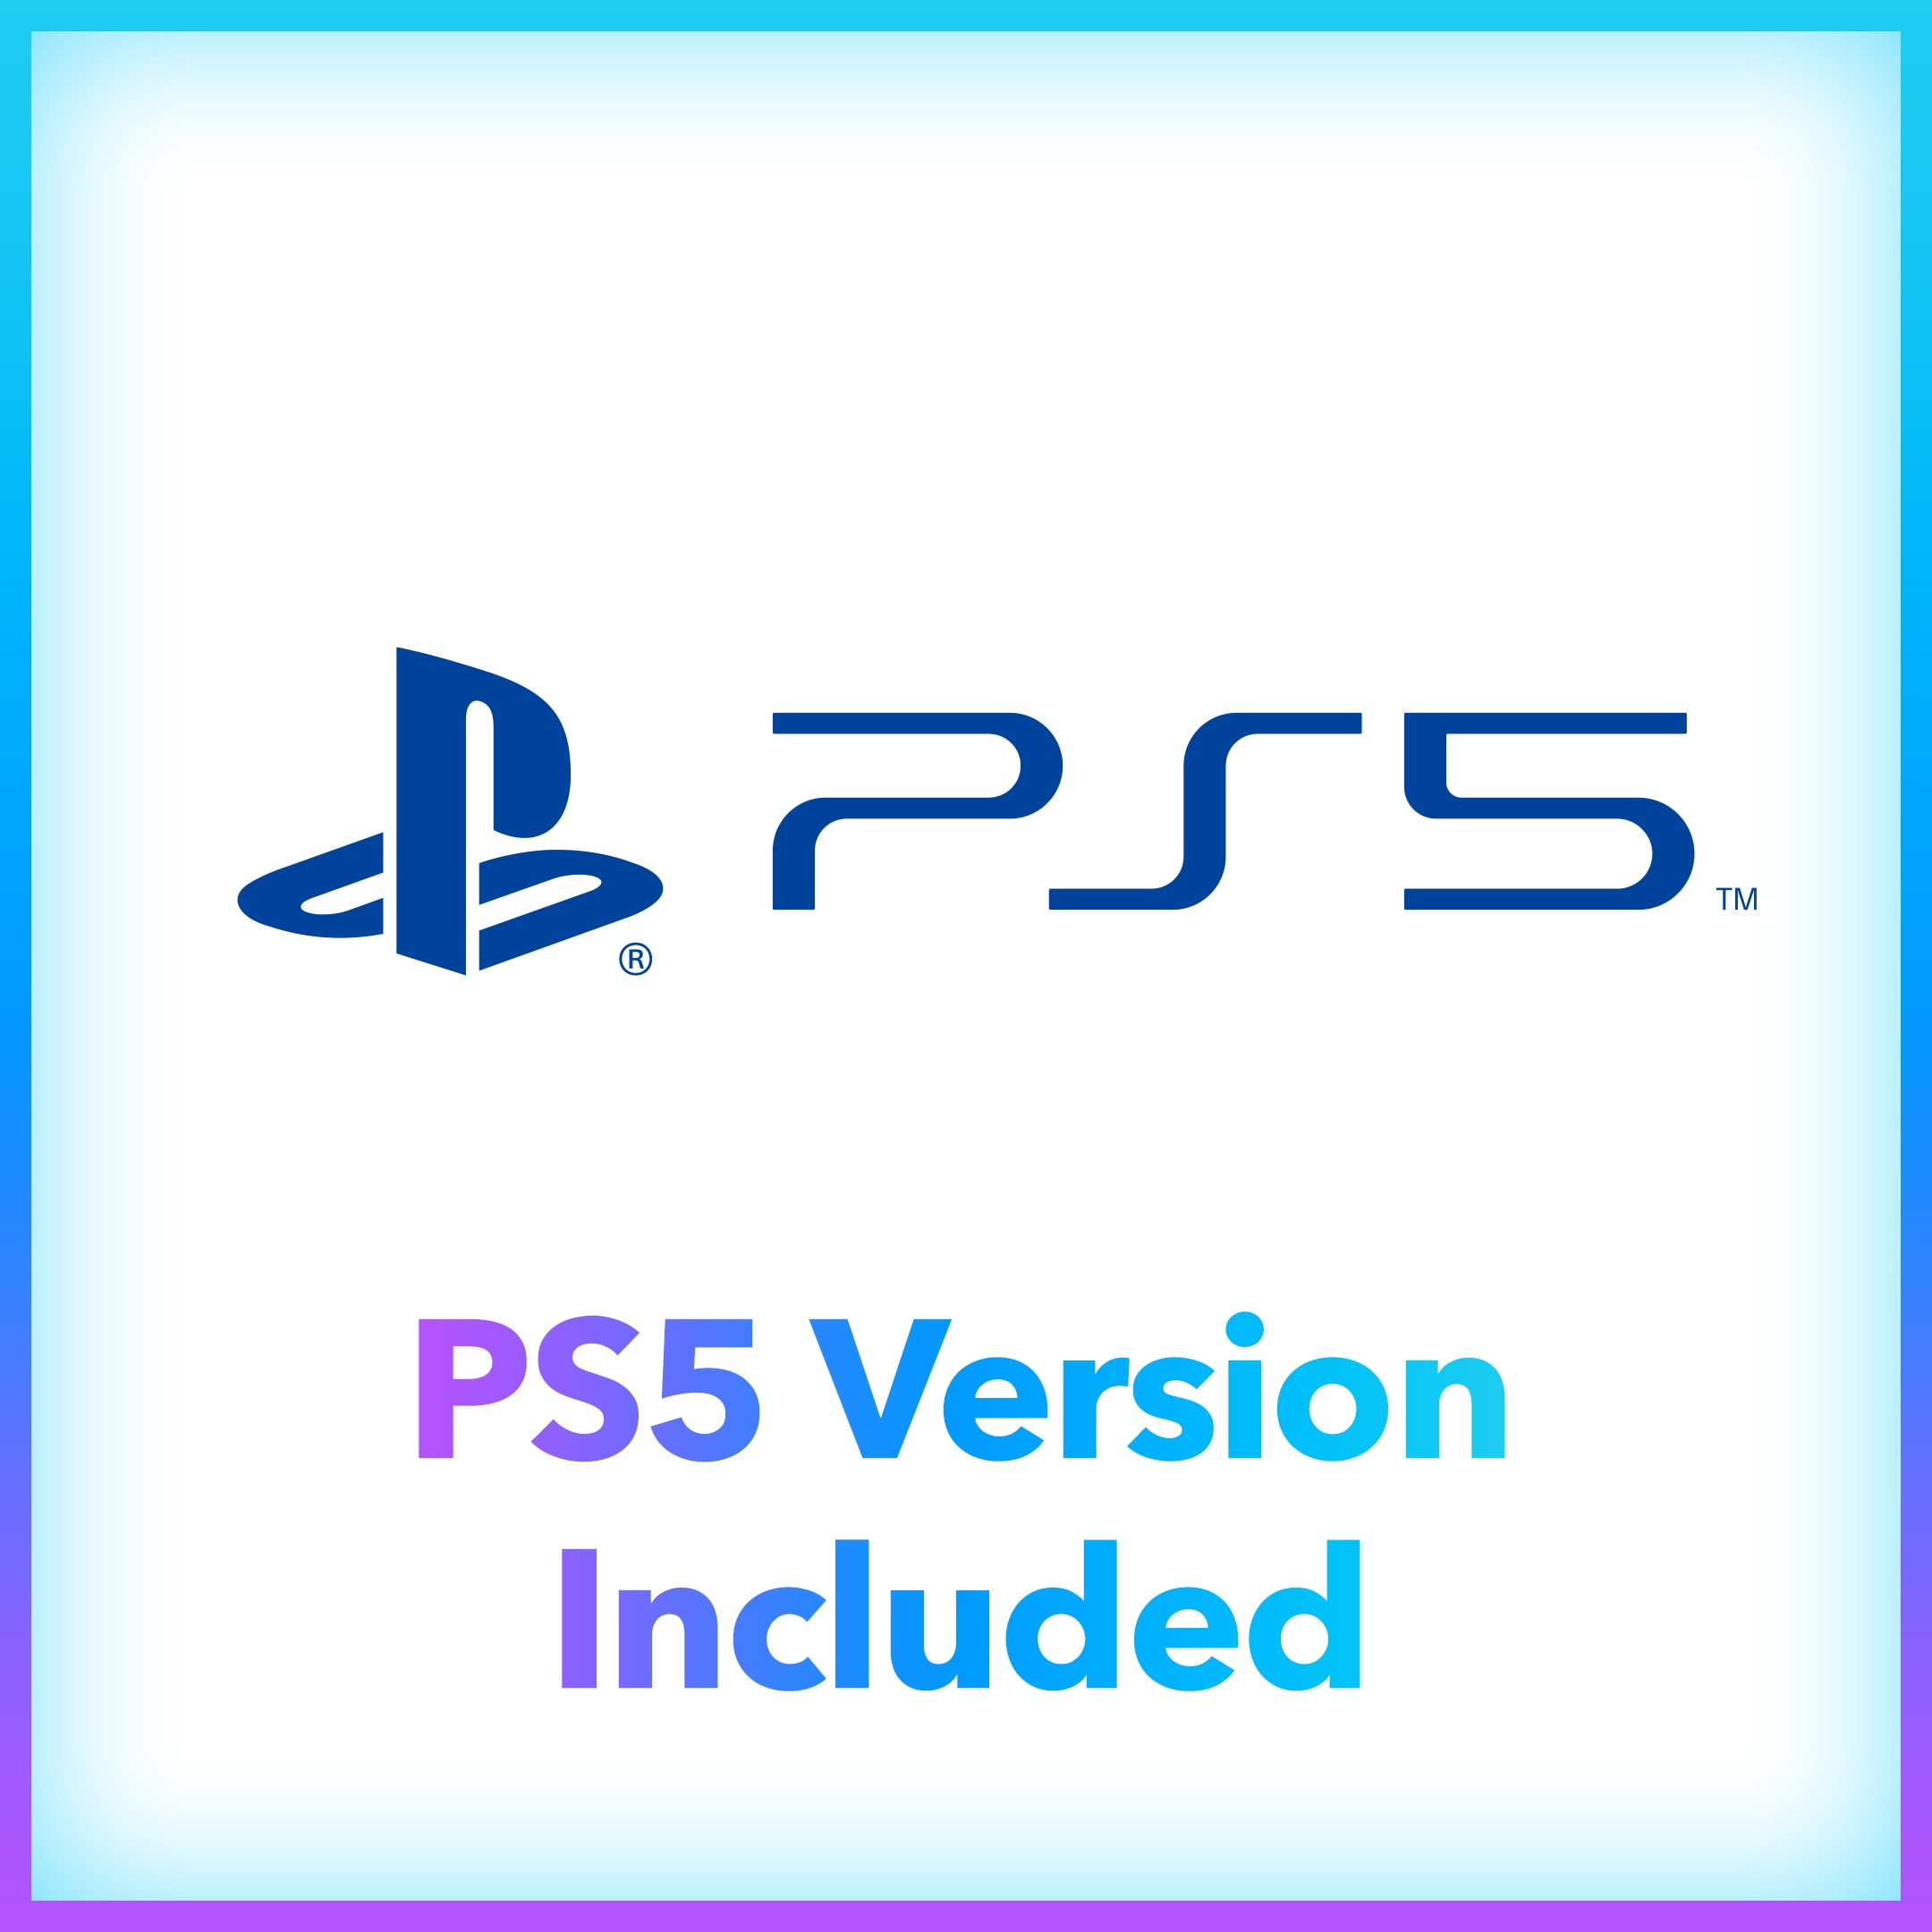 [PROMO] Black Friday - Includes PS5